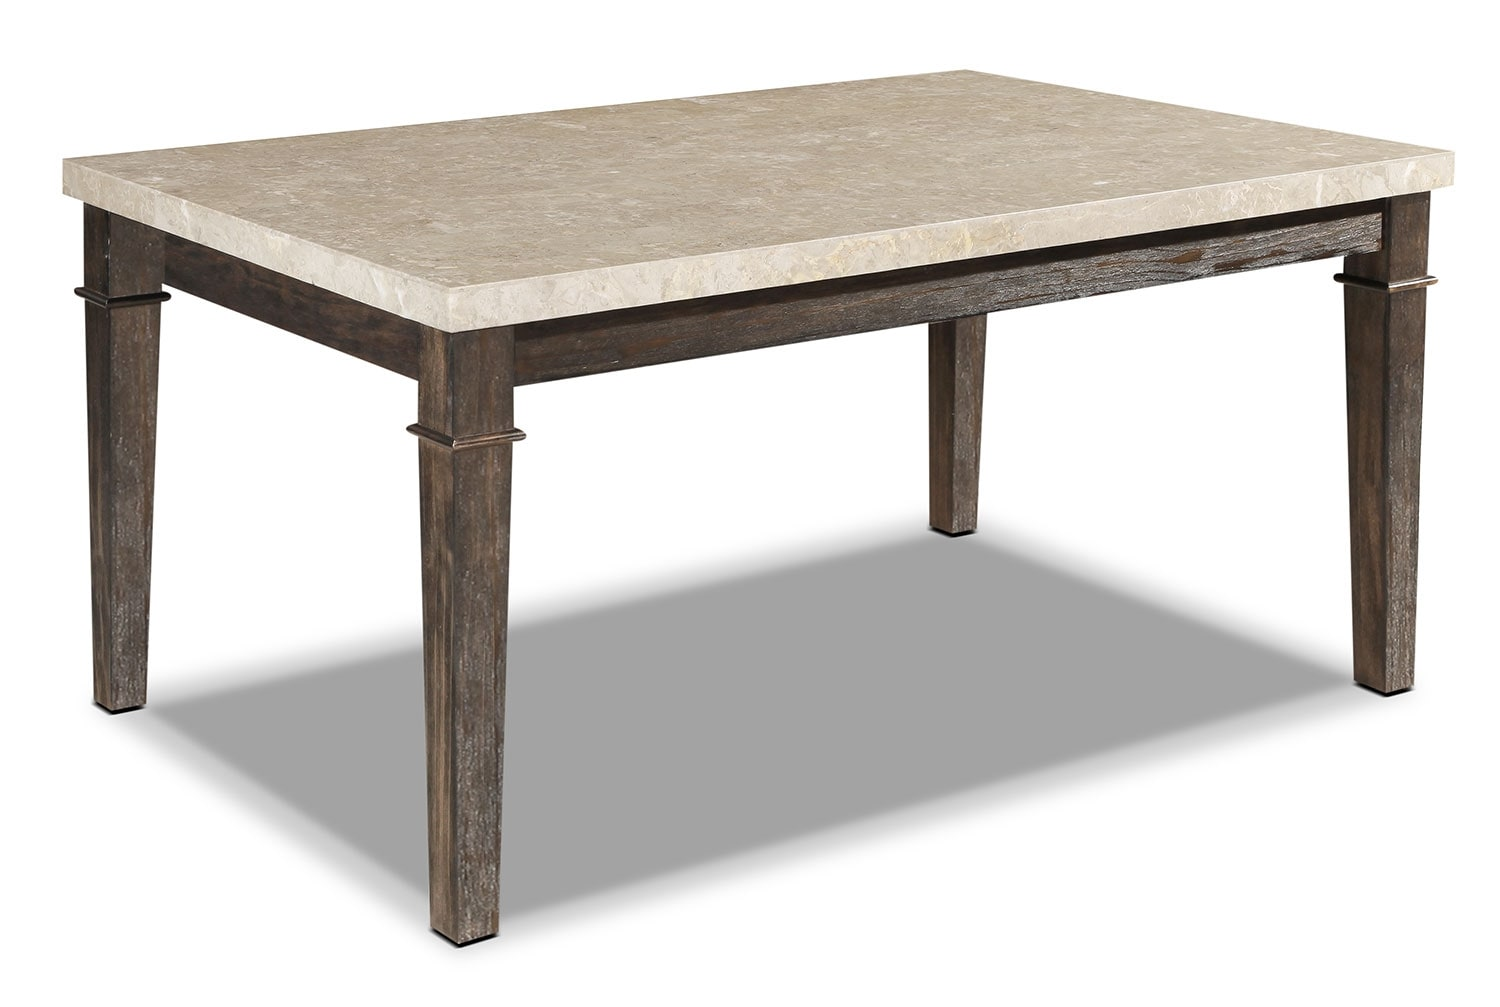 Aldo dining table the brick - Table de cuisine ancienne ...